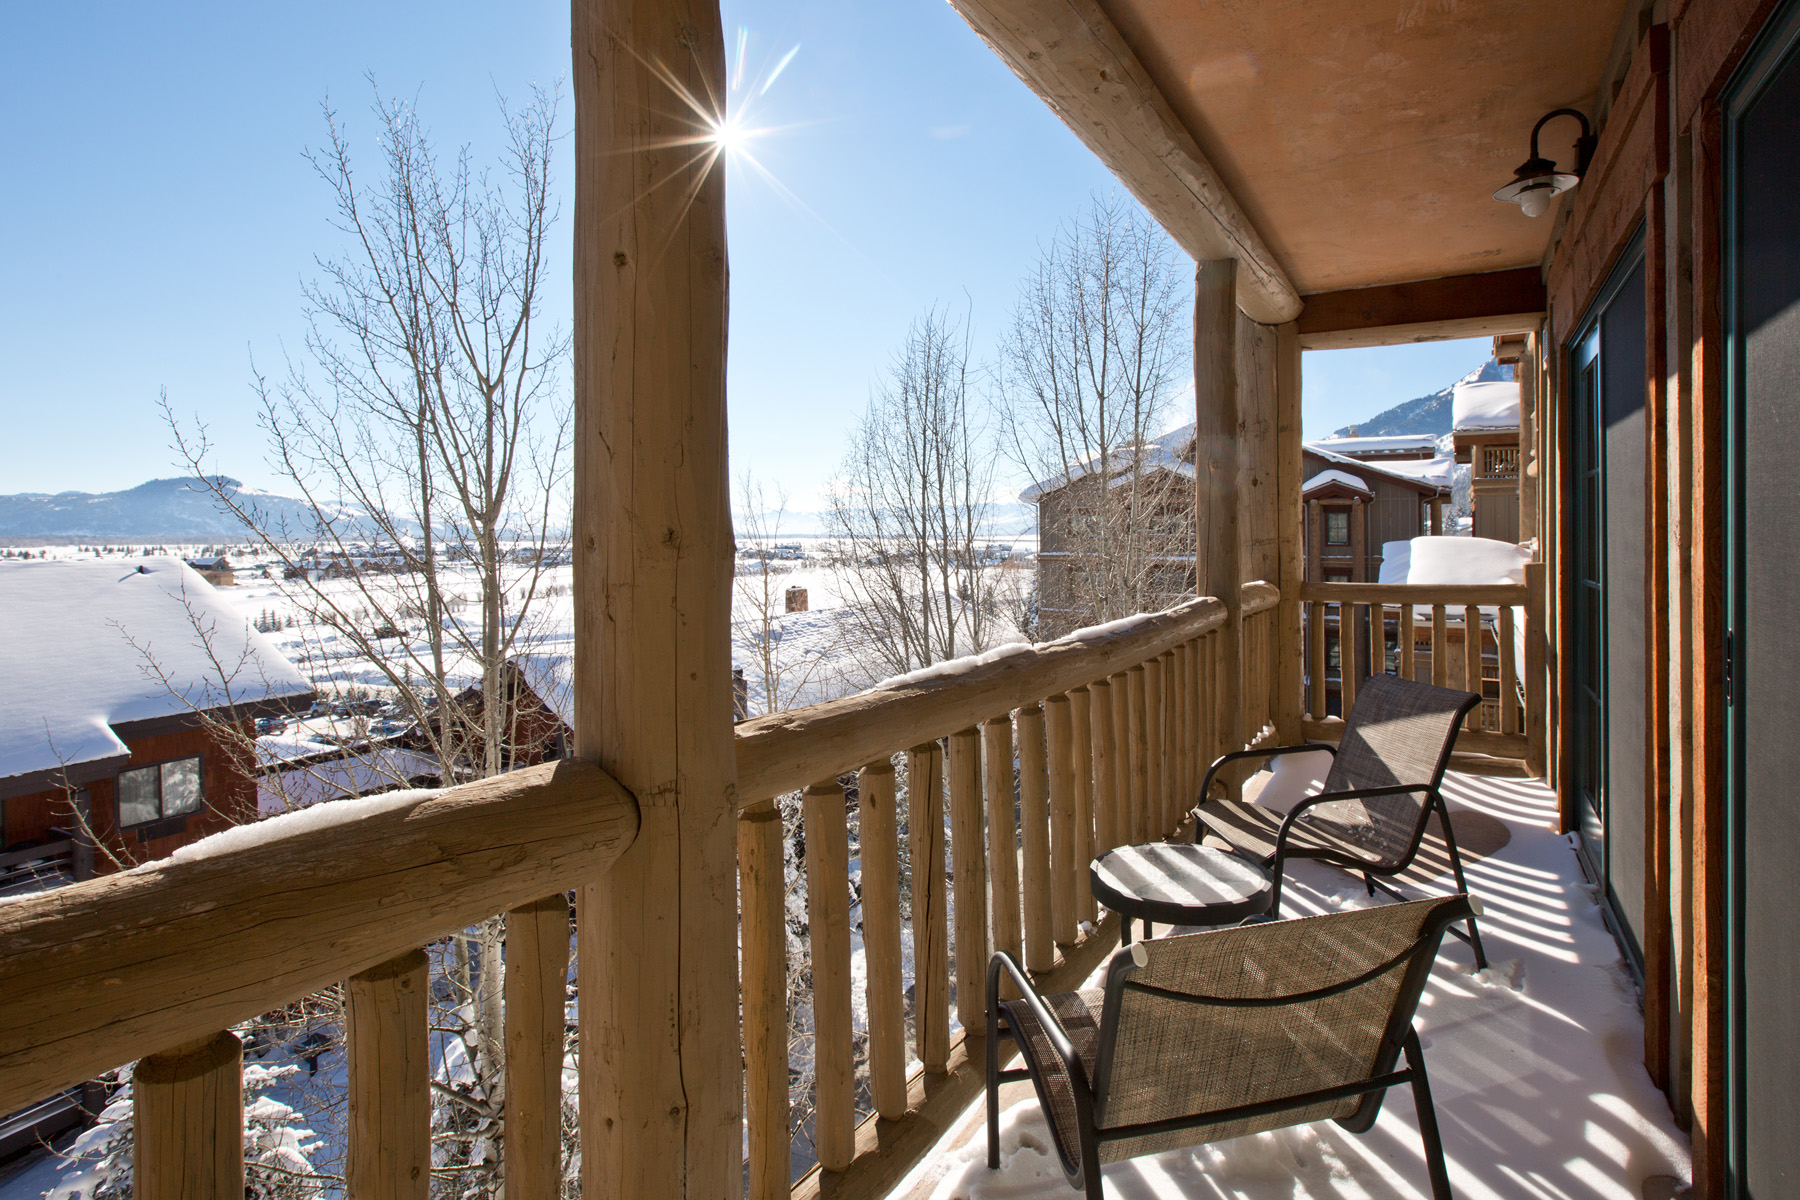 Кооперативная квартира для того Продажа на 2 bdrm 2 bath condo in Teton Village 3385 W. Cody Lane units 301300 Teton Mountain Lodge Teton Village, Вайоминг, 83025 Jackson Hole, Соединенные Штаты